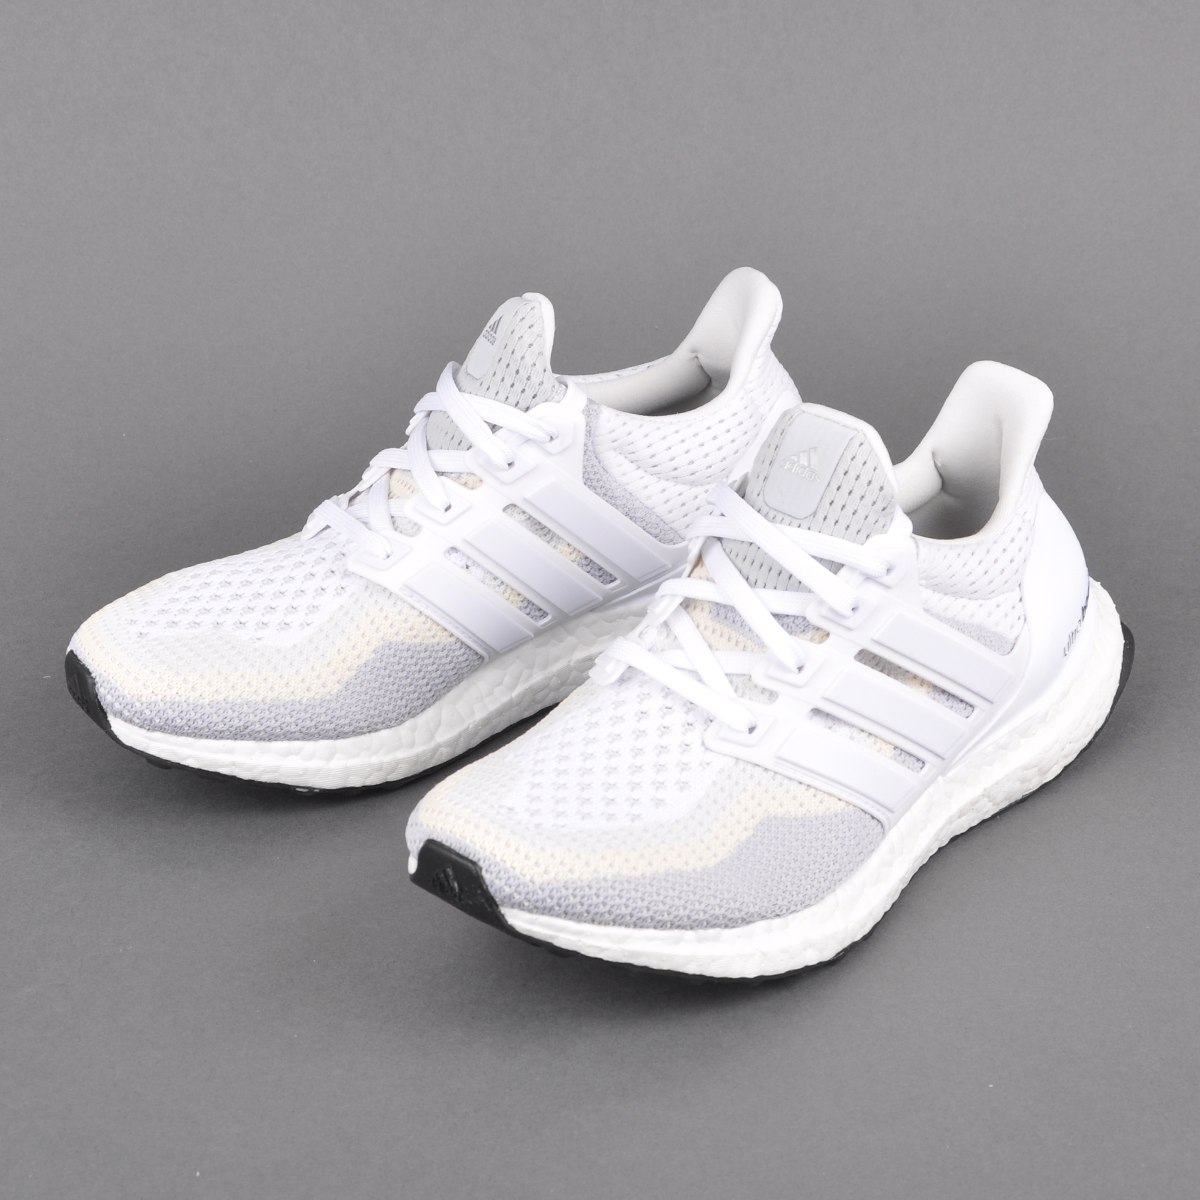 new arrivals 19291 e04b2 Adidas Ultra Boost White Clear Grey